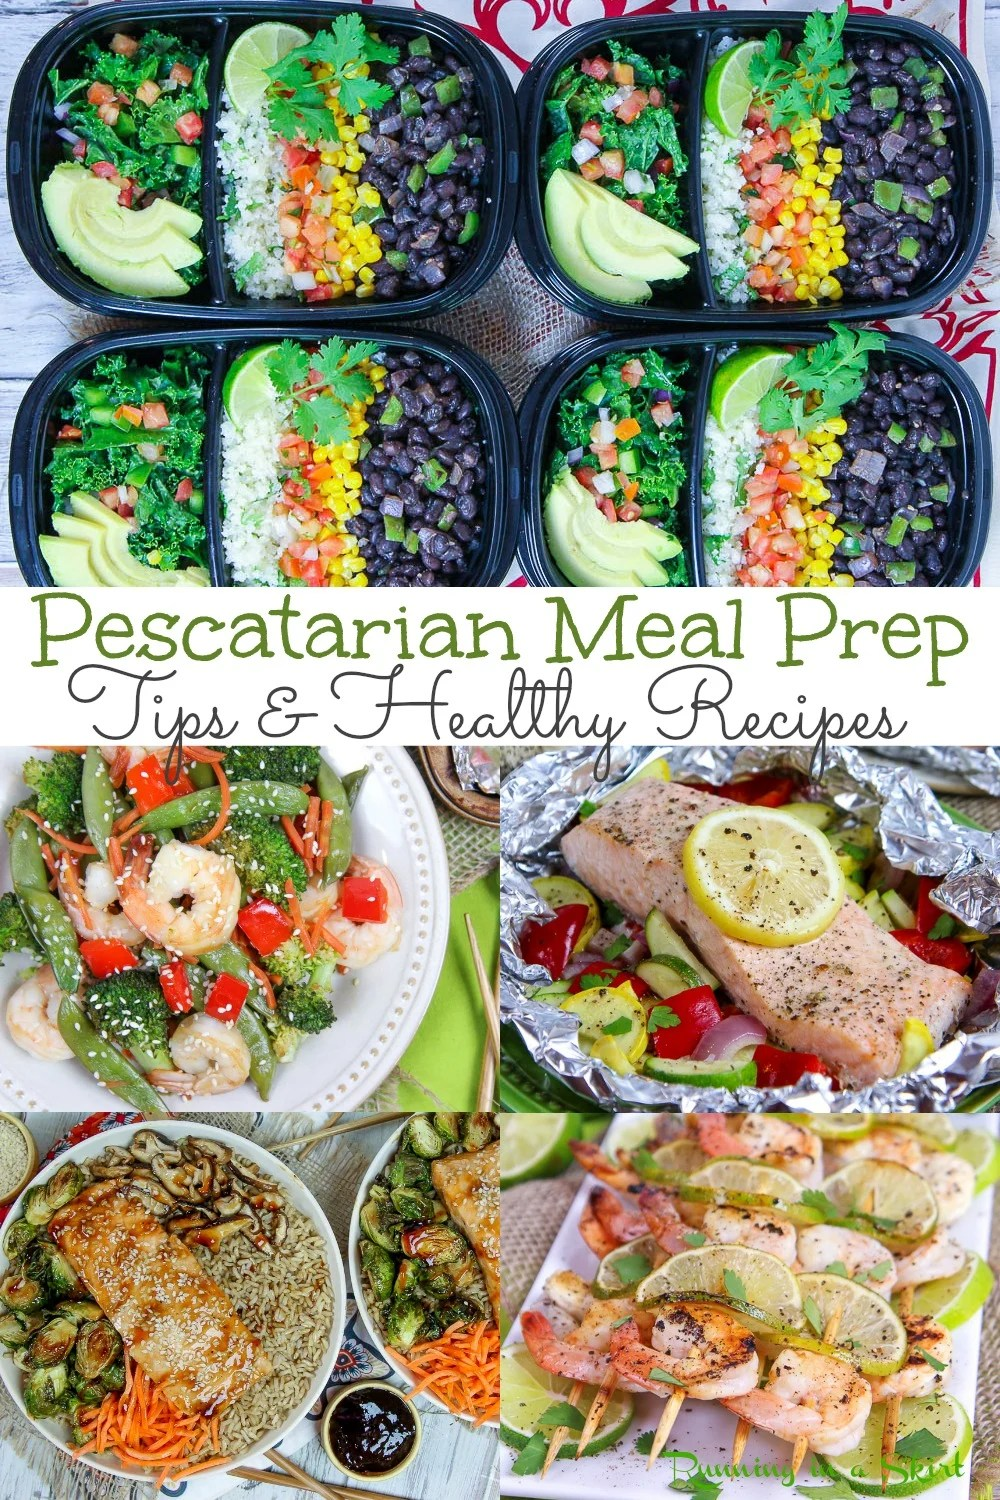 Pescatarian Meal Prep for the week including healthy, clean eating, easy breakfast, lunch, and dinner ideas. Includes plant based vegetarian, seafood - fish (salmon, shrimp), vegan and low carb and weight loss recipes. Also has tips and tricks (including the best containers) for meal prep success. Super delicious! / Running in a Skirt #pescatarian #mealprep #healthy #healthyliving #vegetarian via @juliewunder